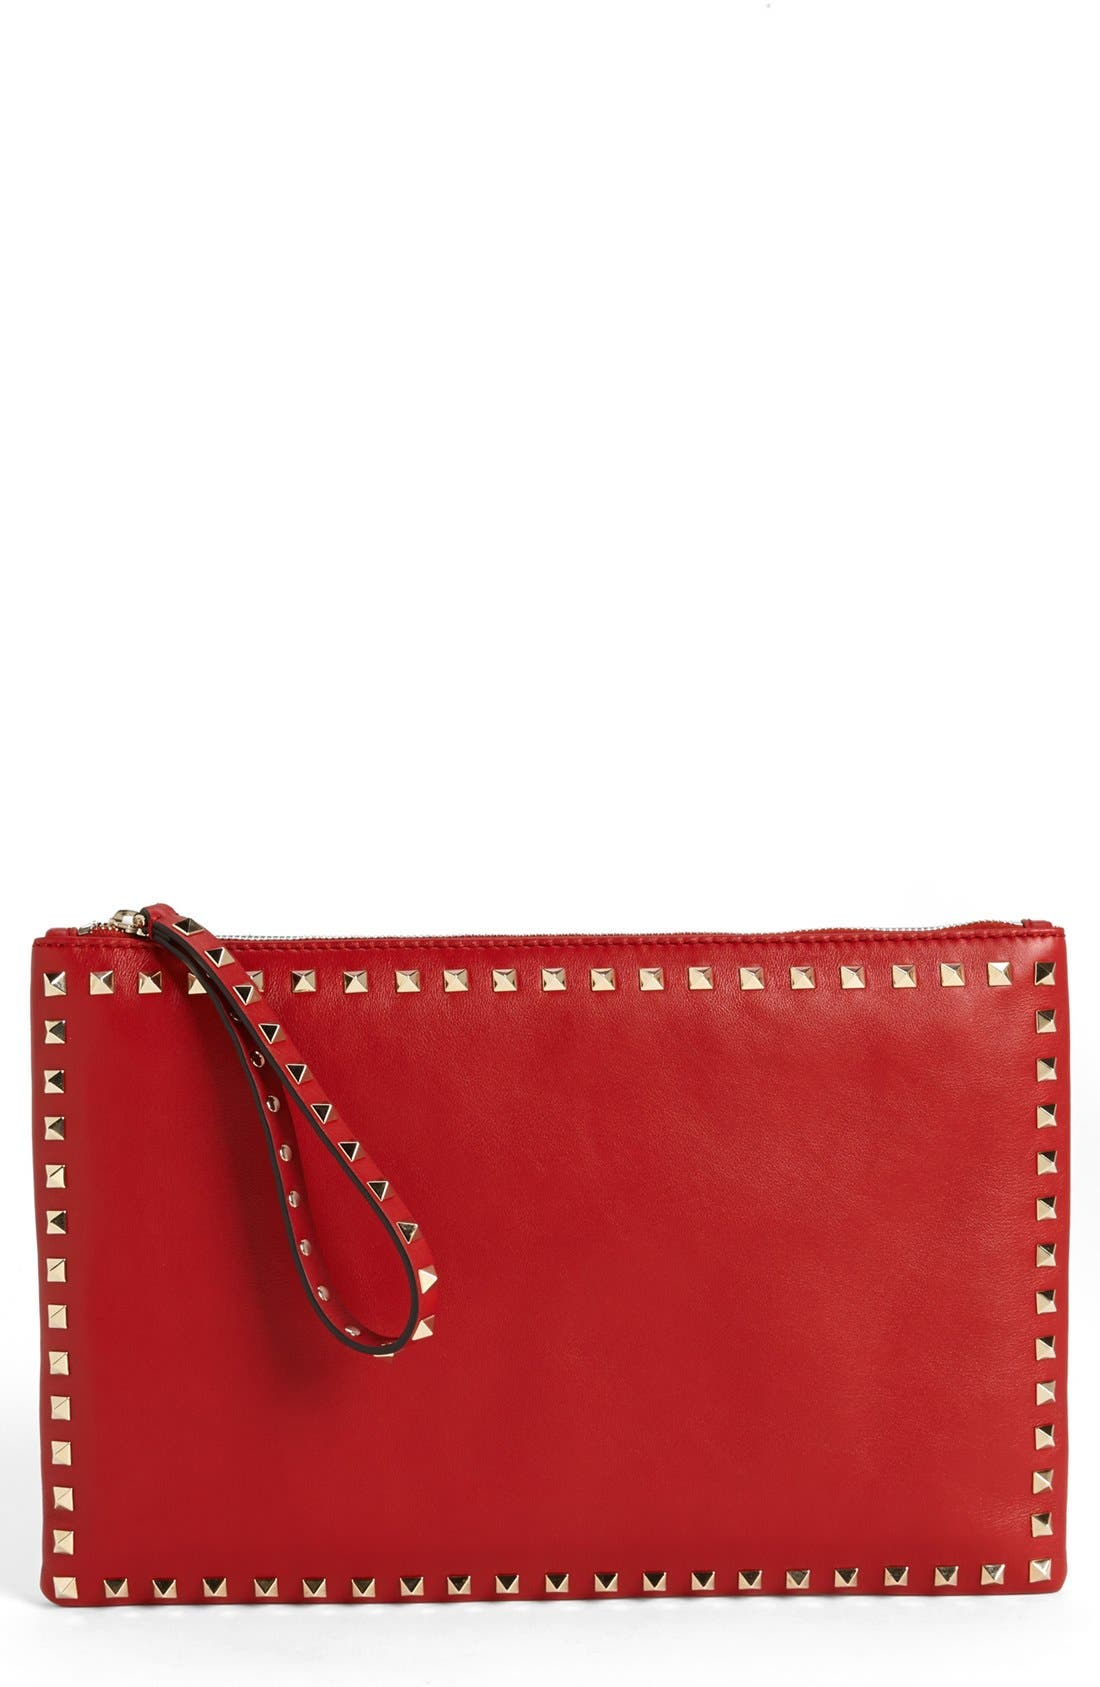 Main Image - Valentino 'Rockstud - Flat' Nappa Leather Clutch